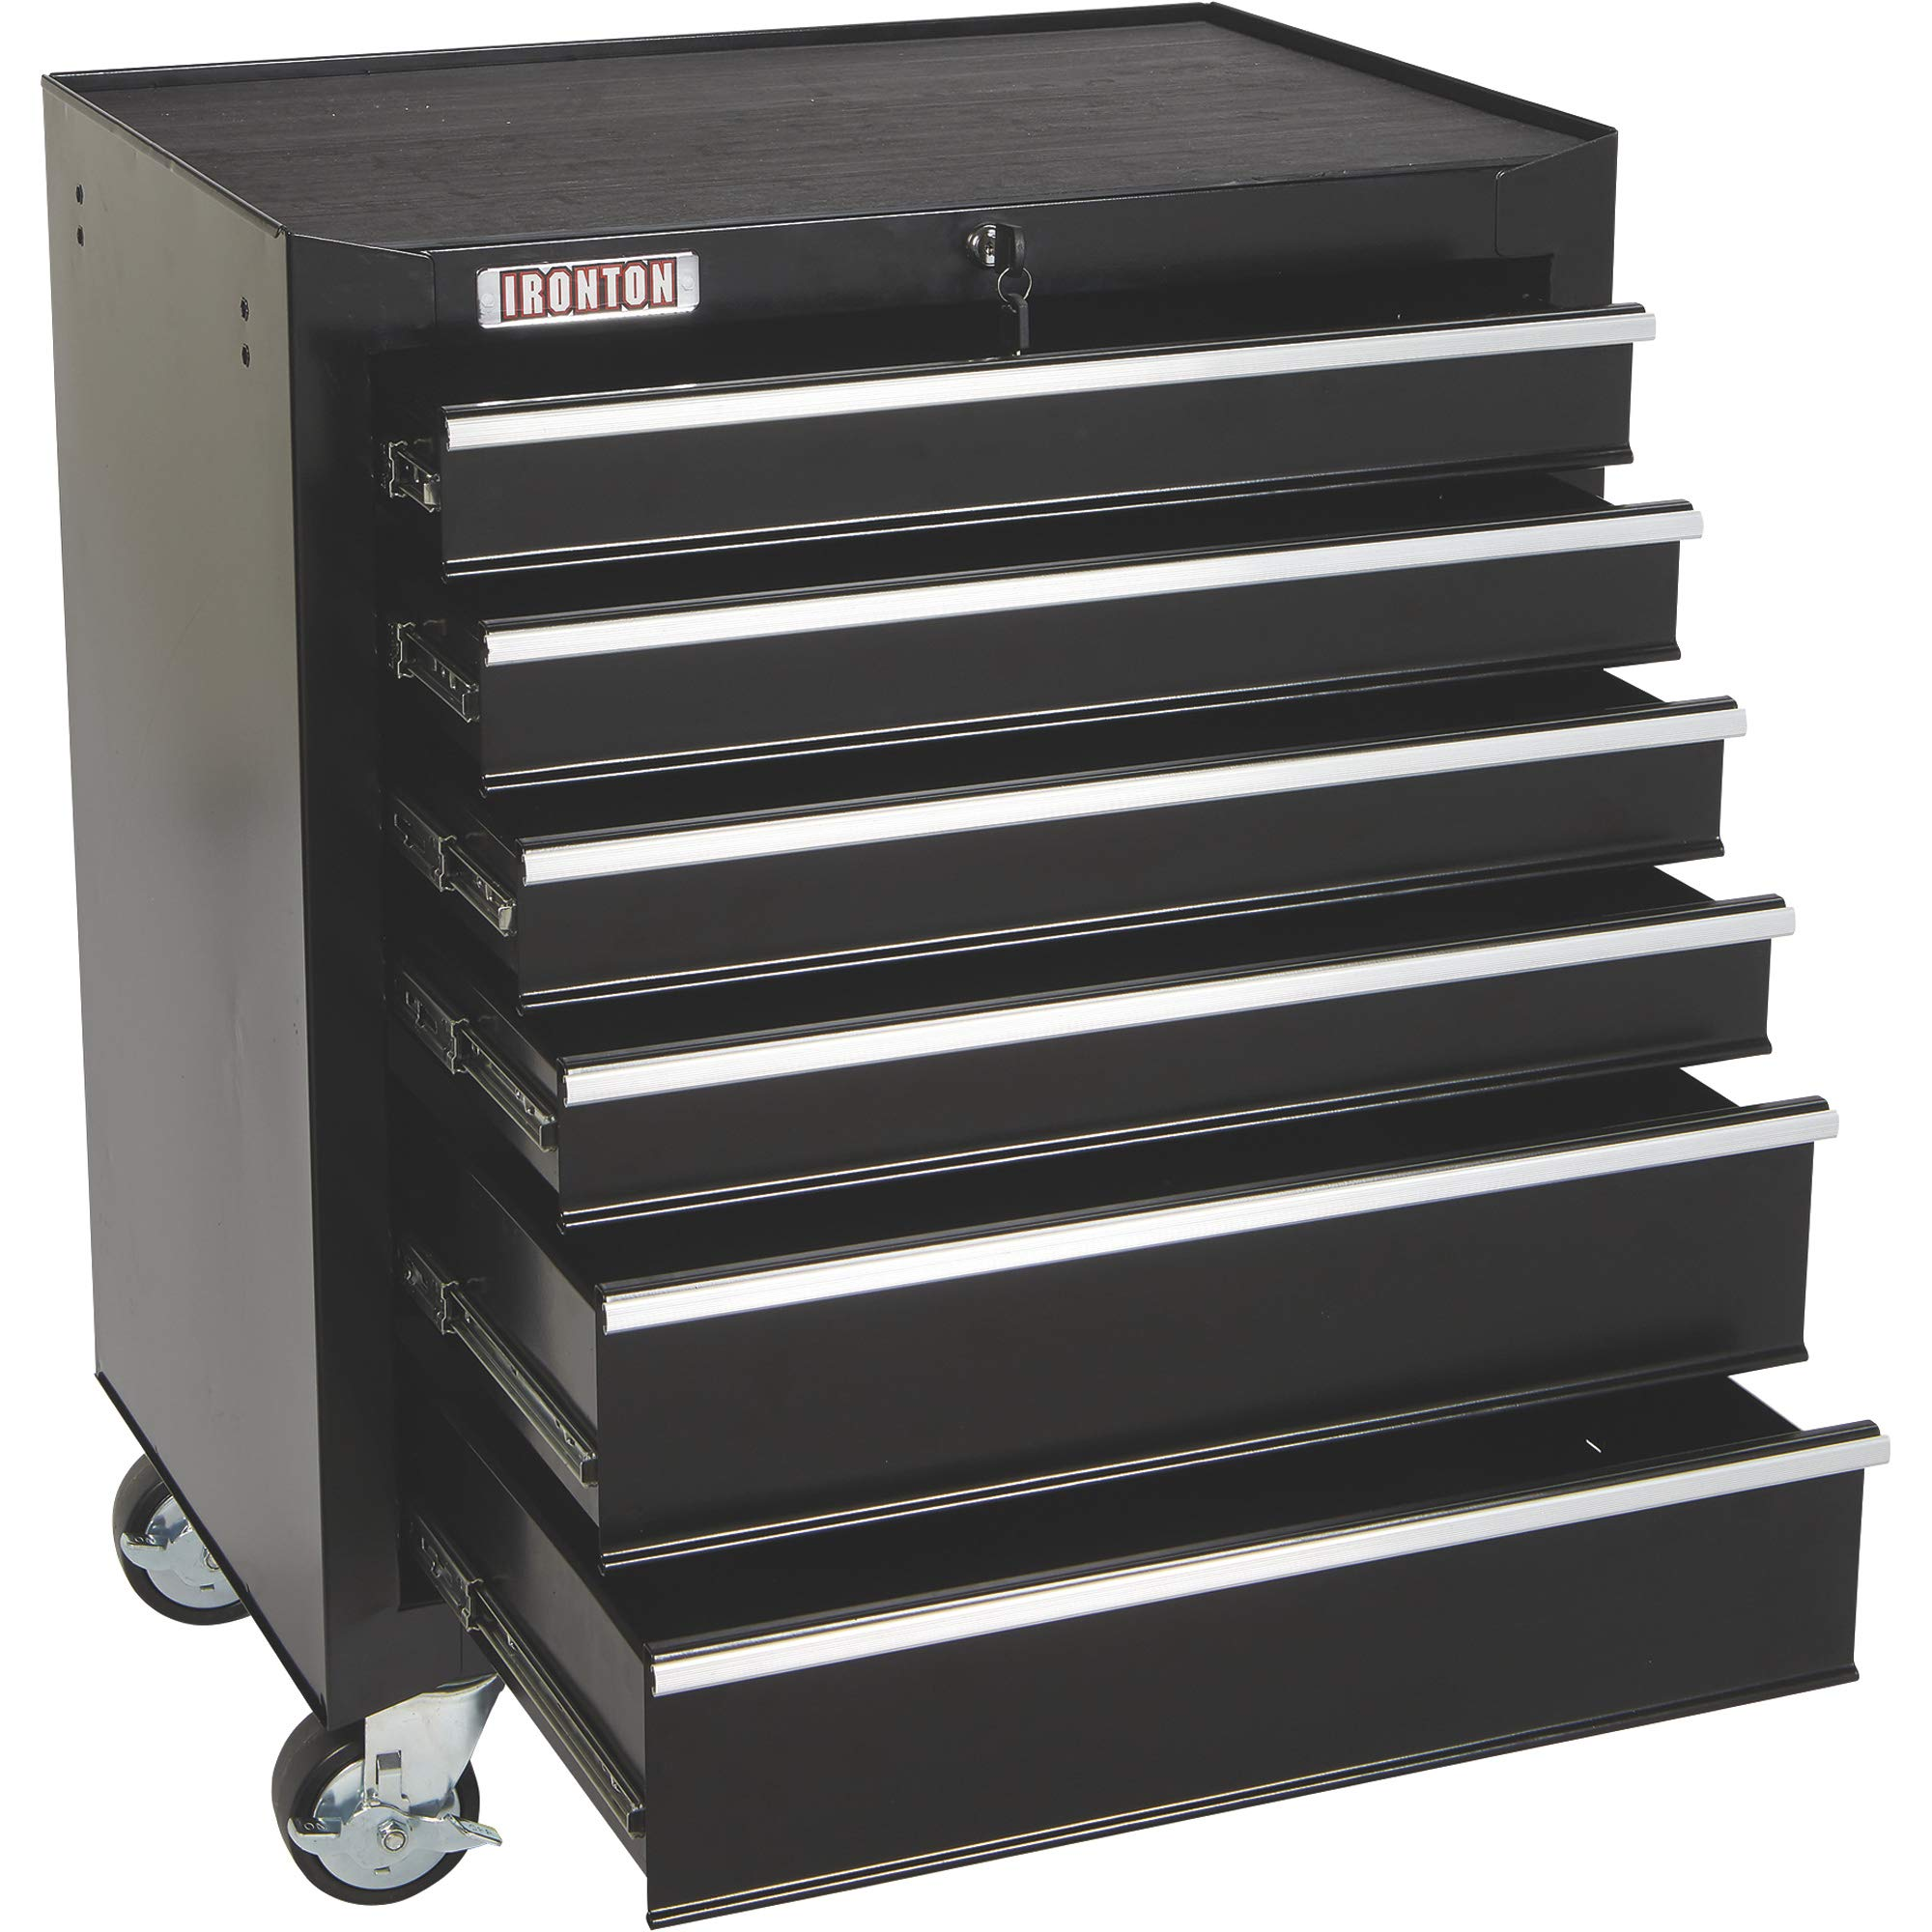 Ironton 26in. 6-Drawer Rolling Tool Chest - 26.75in.W x 18in.D x 33.3in.H by Ironton (Image #6)